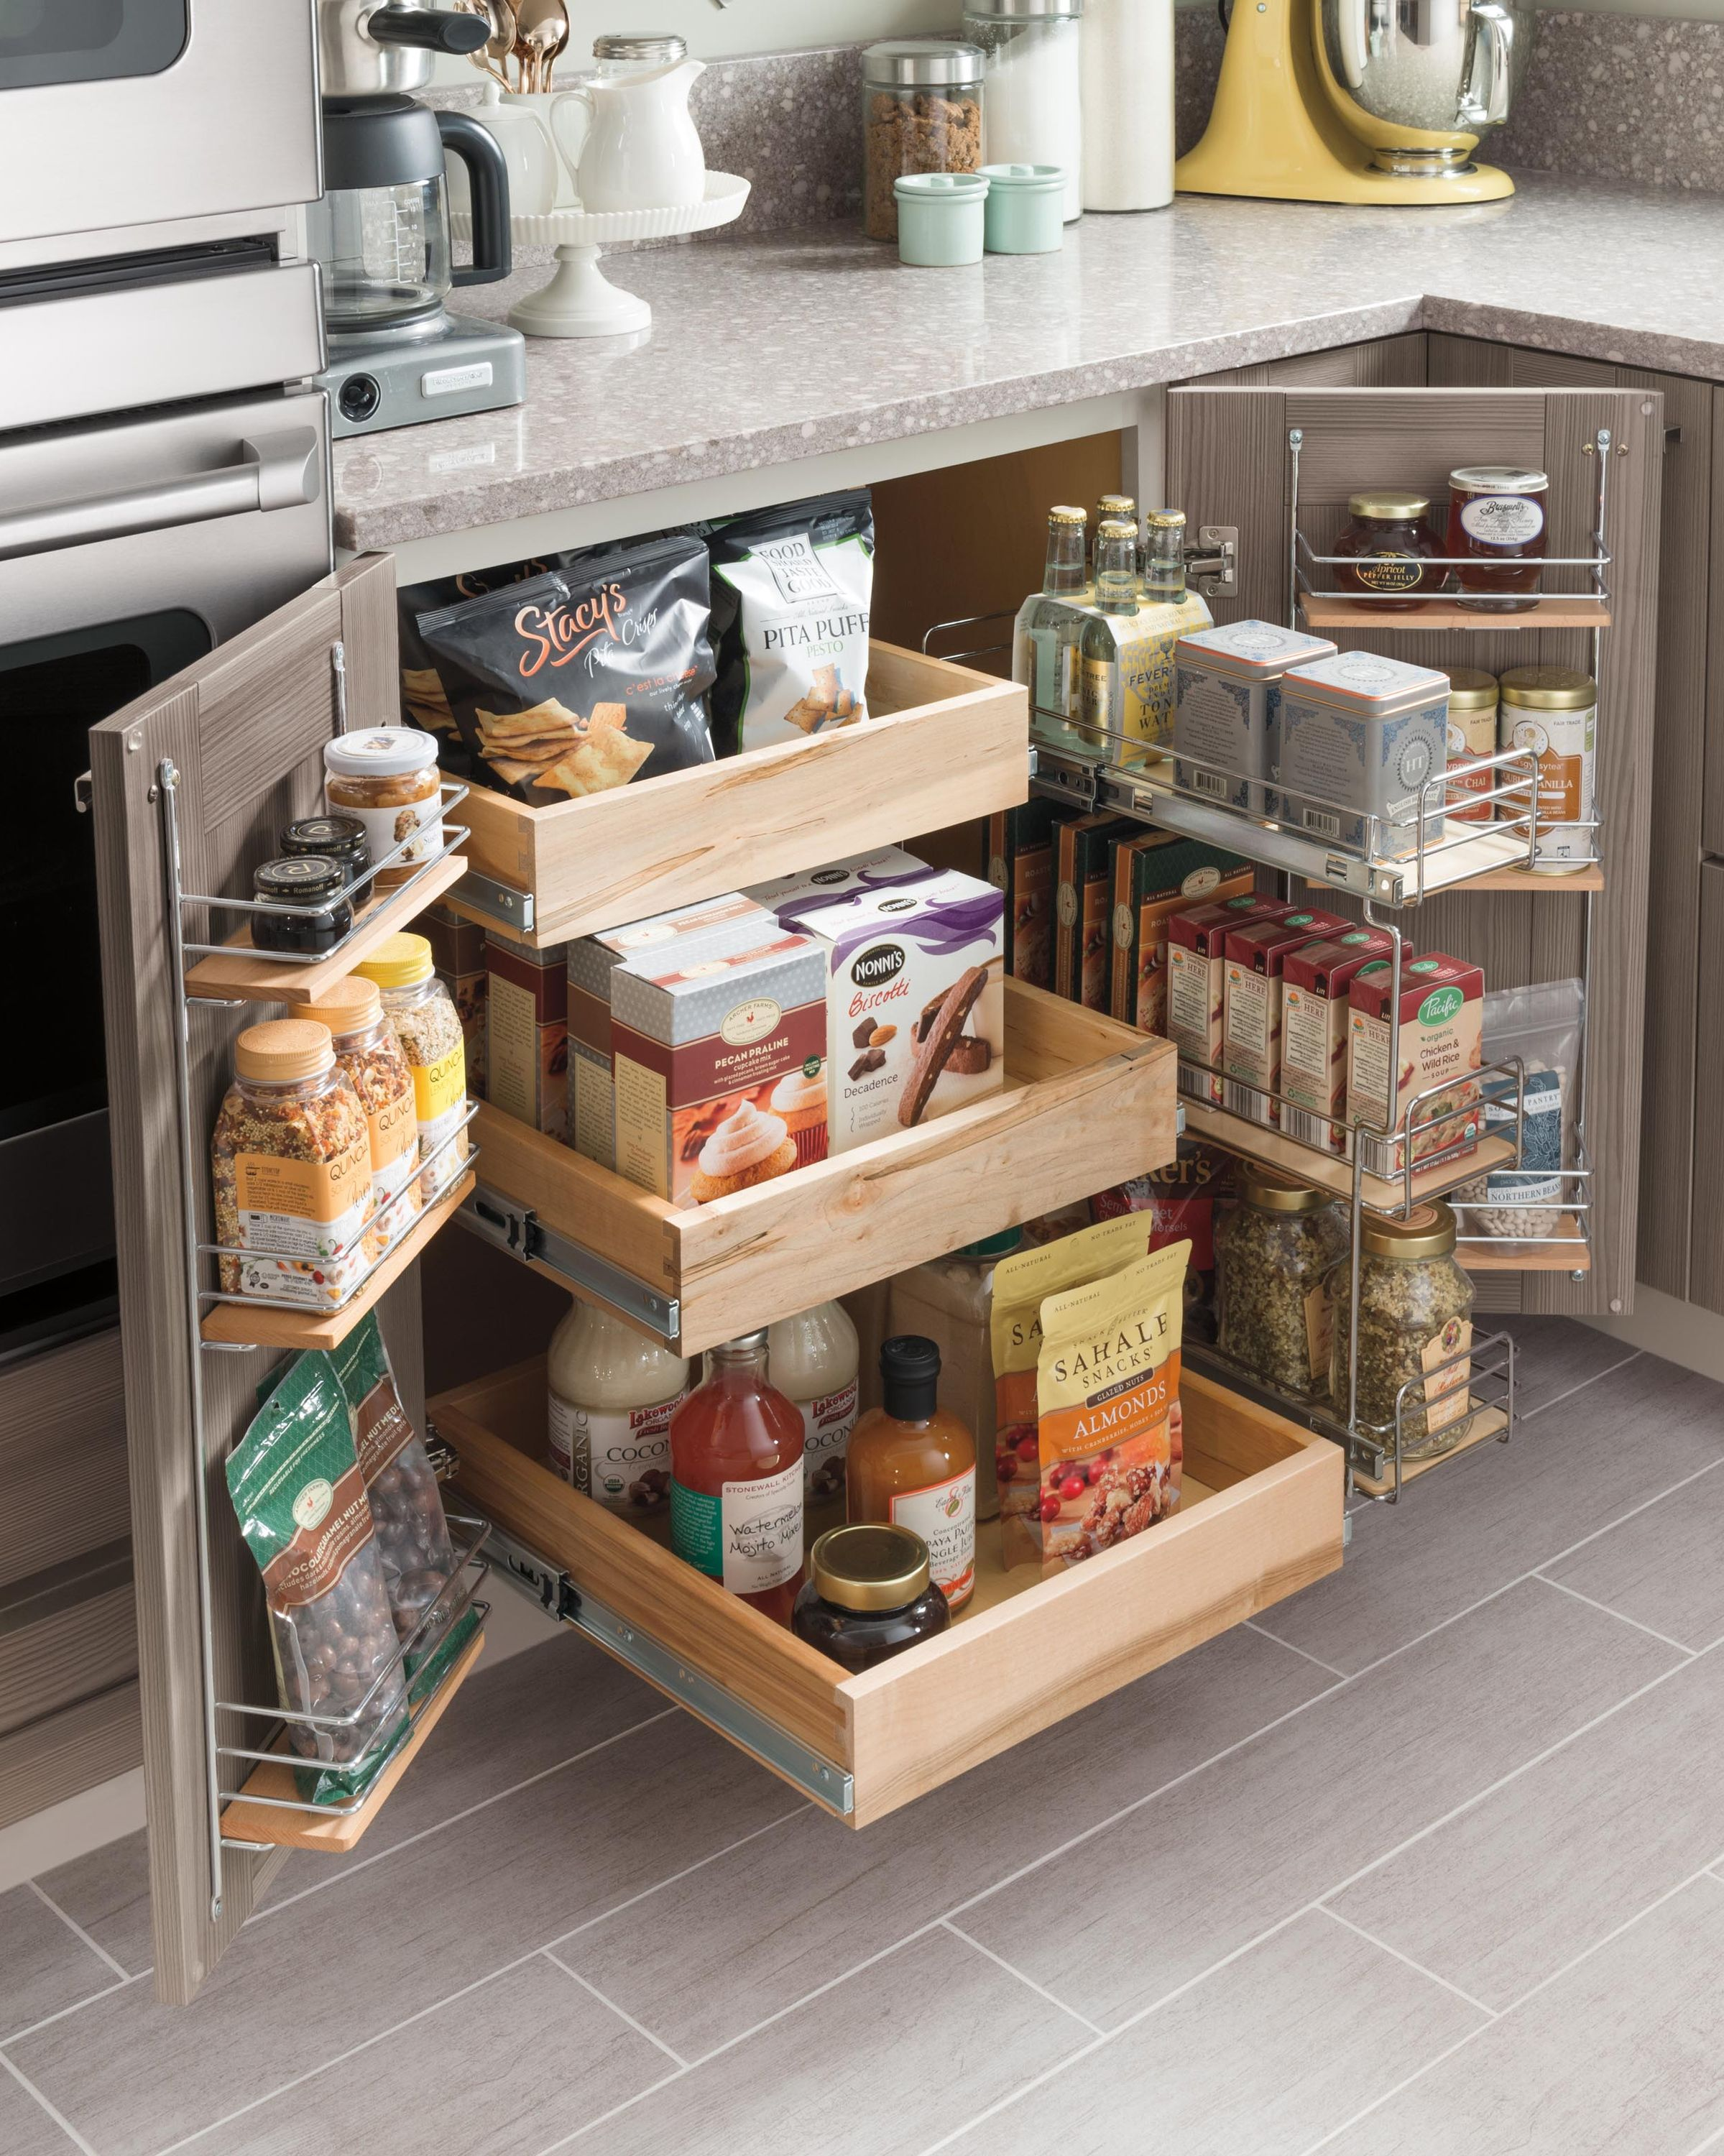 Small Kitchen Storage Ideas For A More Efficient Space Small Kitchen Storage Kitchen Design Small Kitchen Design